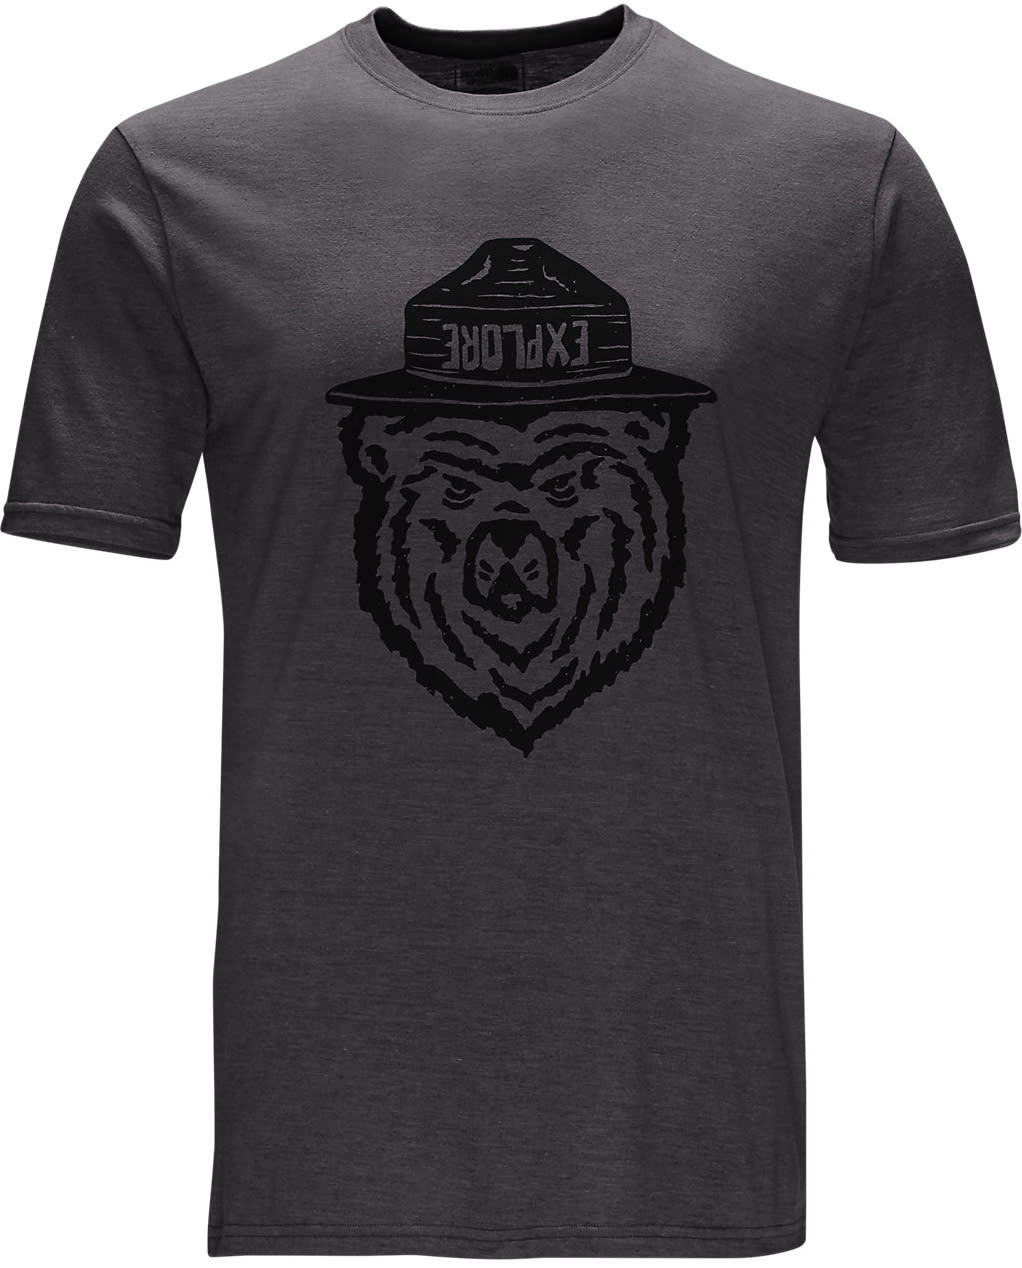 On sale the north face ranger bear tri blend t shirt 2018 for Bear river workwear shirts